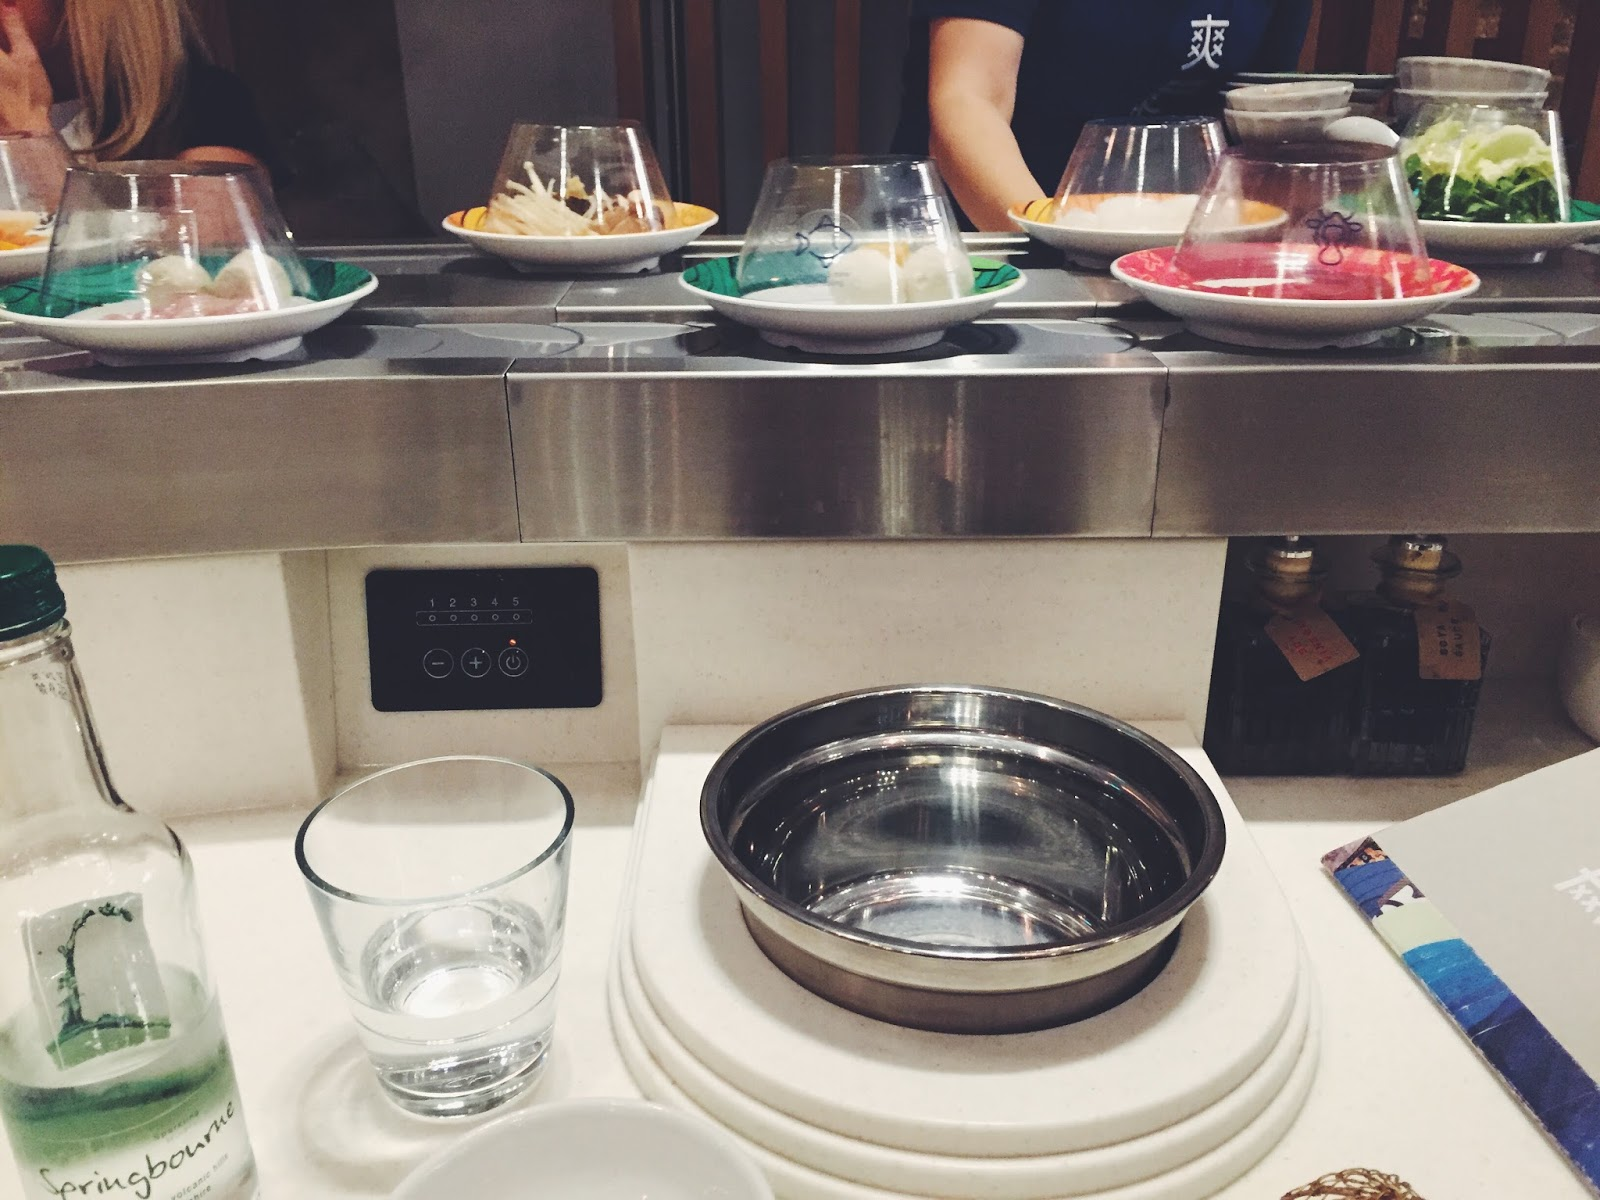 Shuang Shuang: Conveyor belts and boiling broth